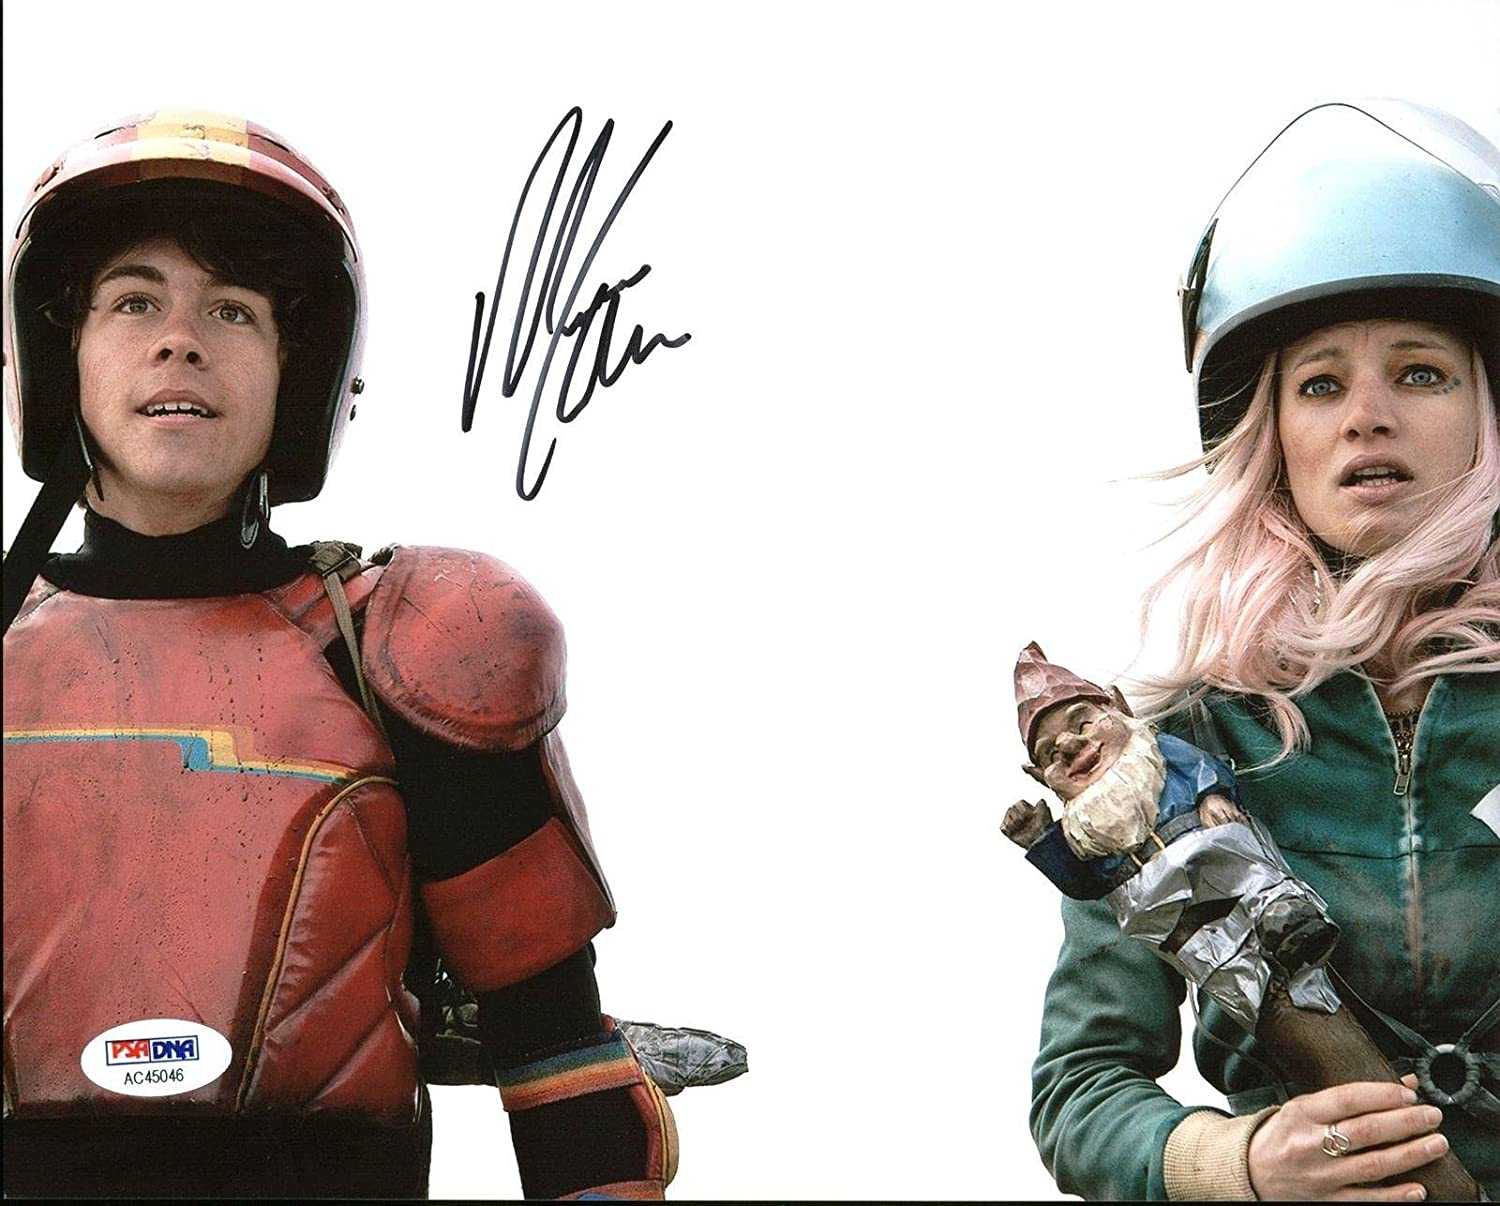 Munro Chambers Turbo Kid Signed 8X10 Photo #AC45046 PSA/DNA Certified at Amazons Entertainment Collectibles Store